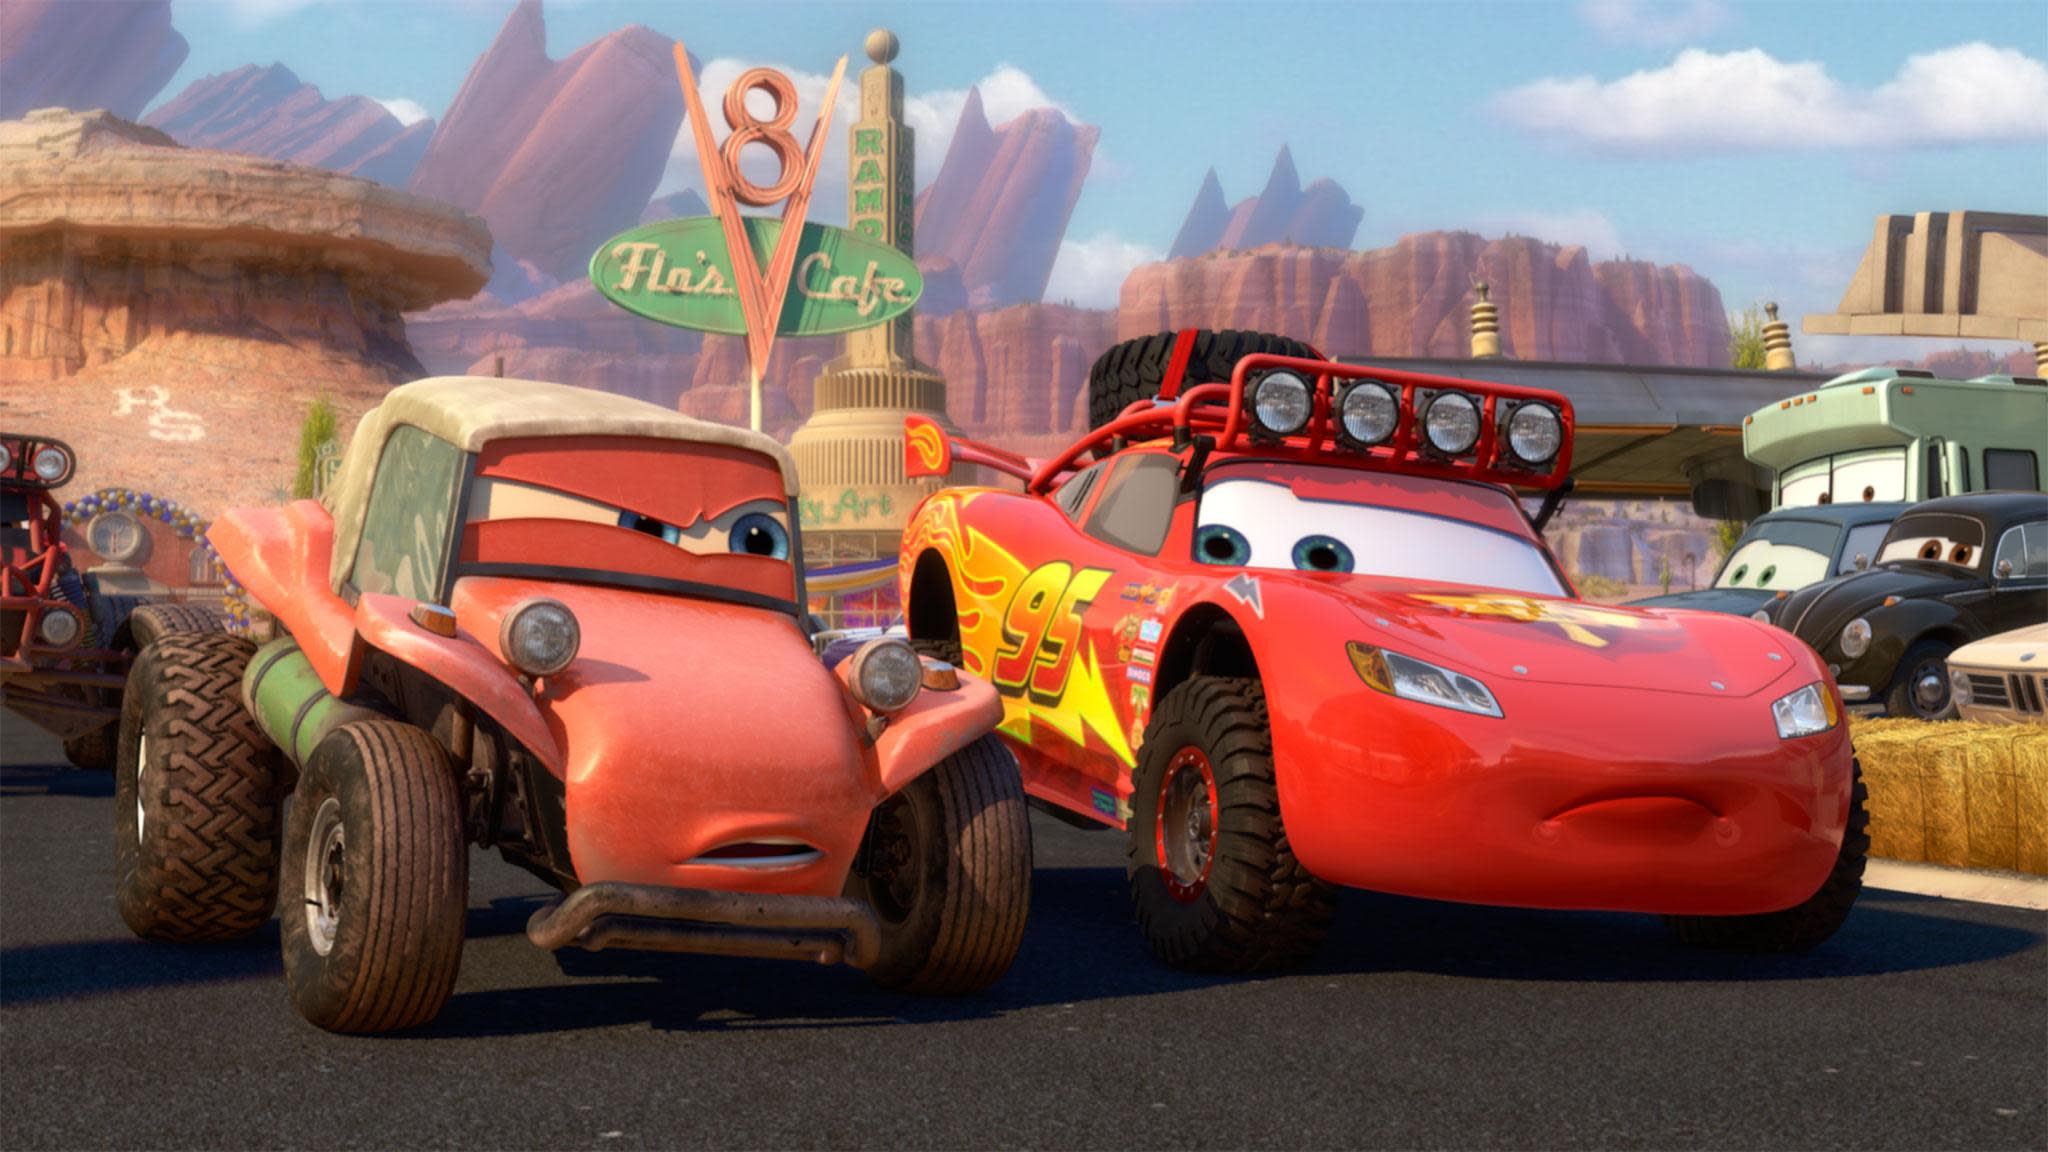 disney/pixar's 'cars' roar back in a new short